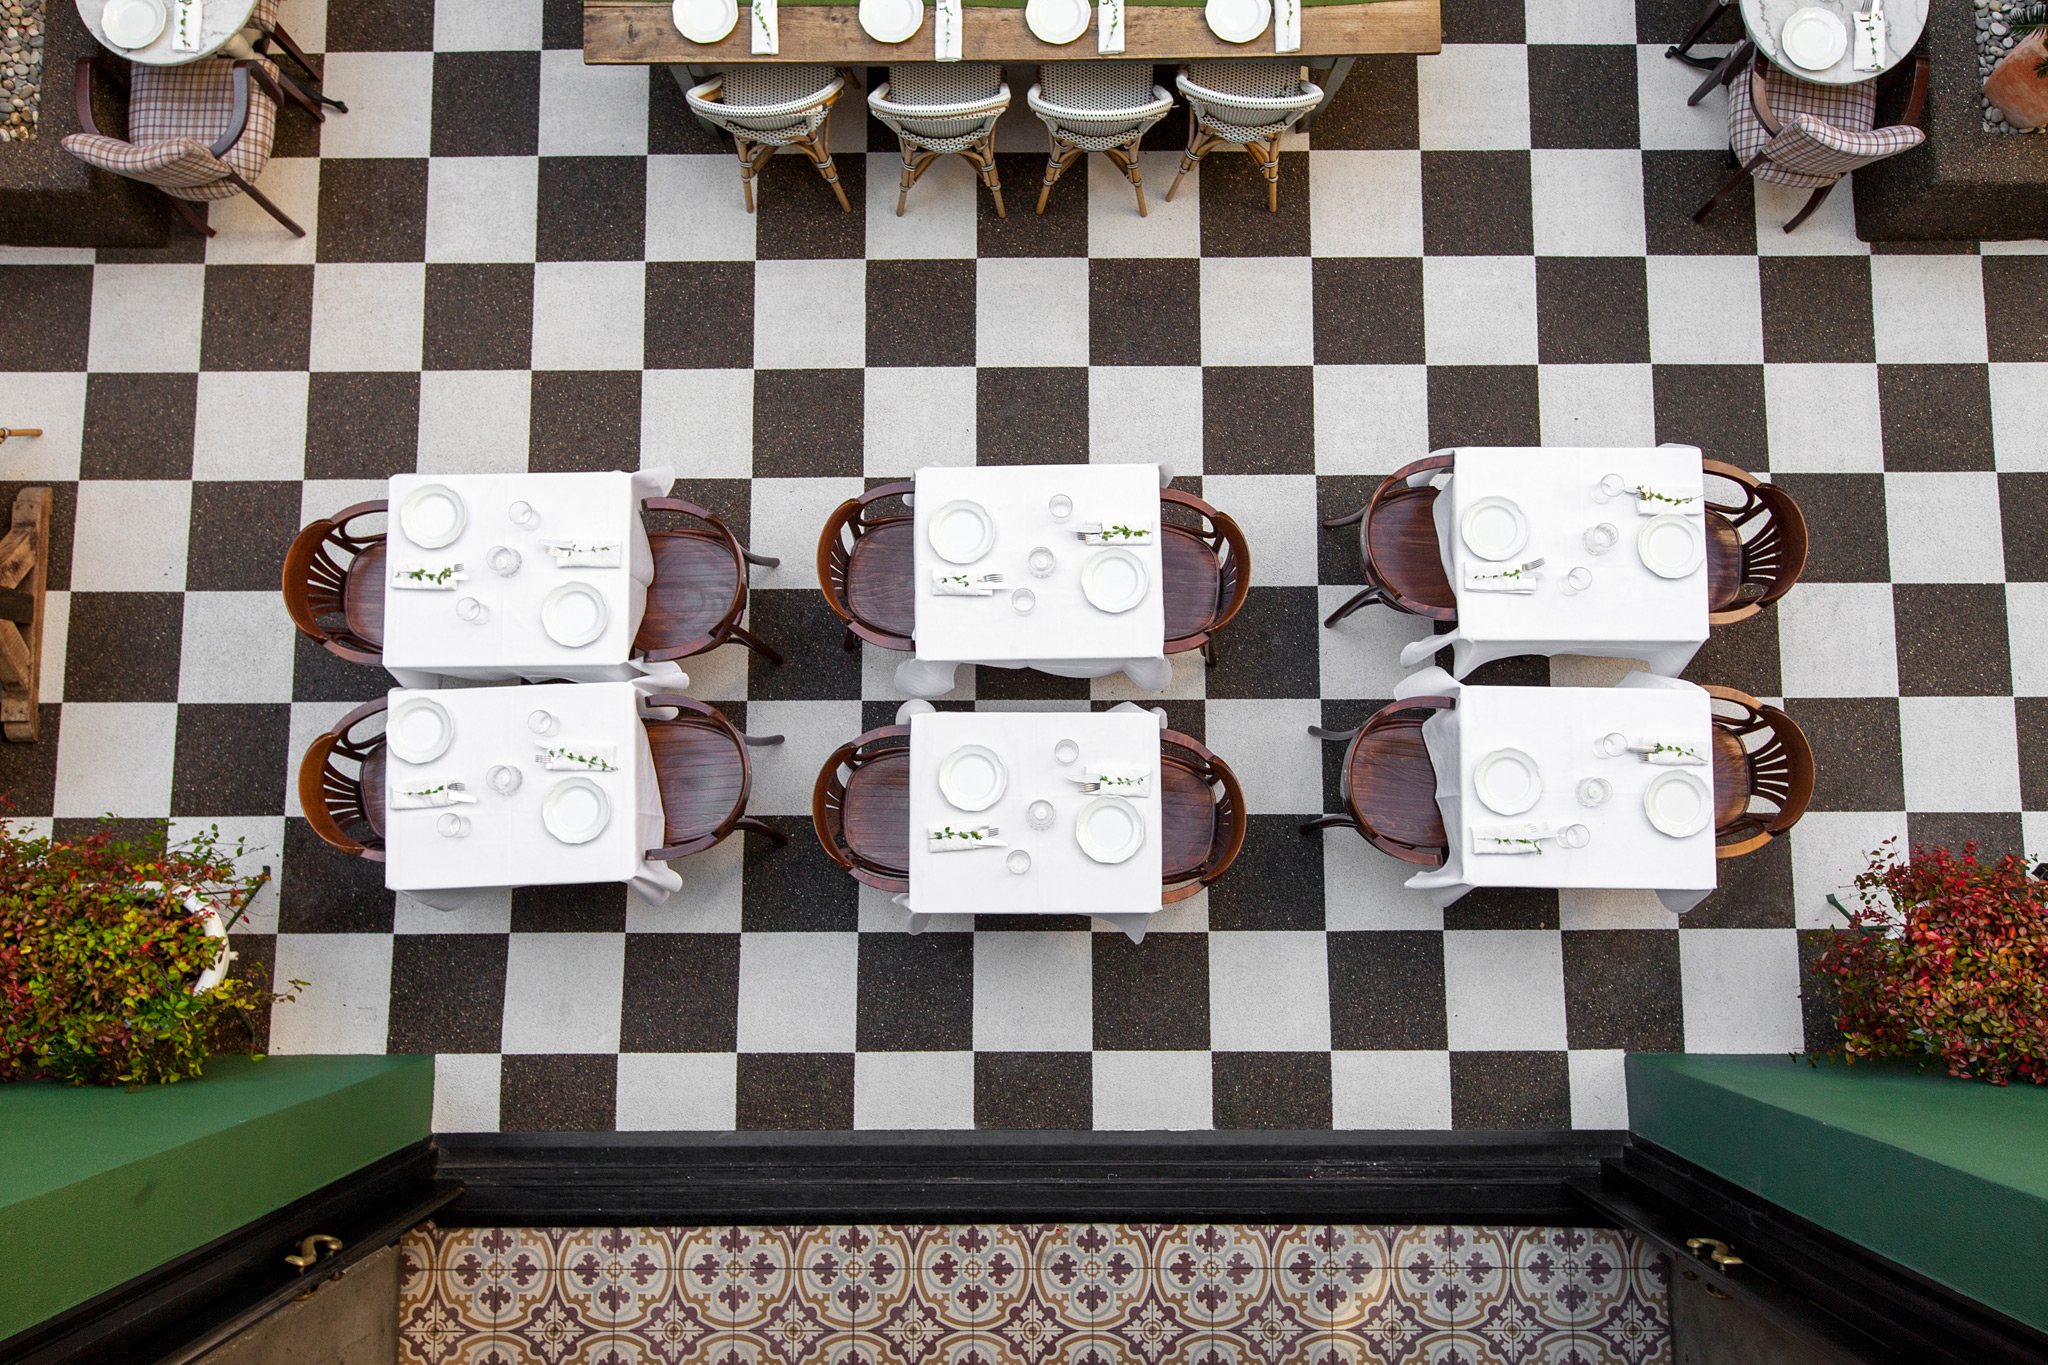 birds-eye view of courtyard, checker patterned floor, white marble and reclaimed wood tables with wood chairs tastefully set for service